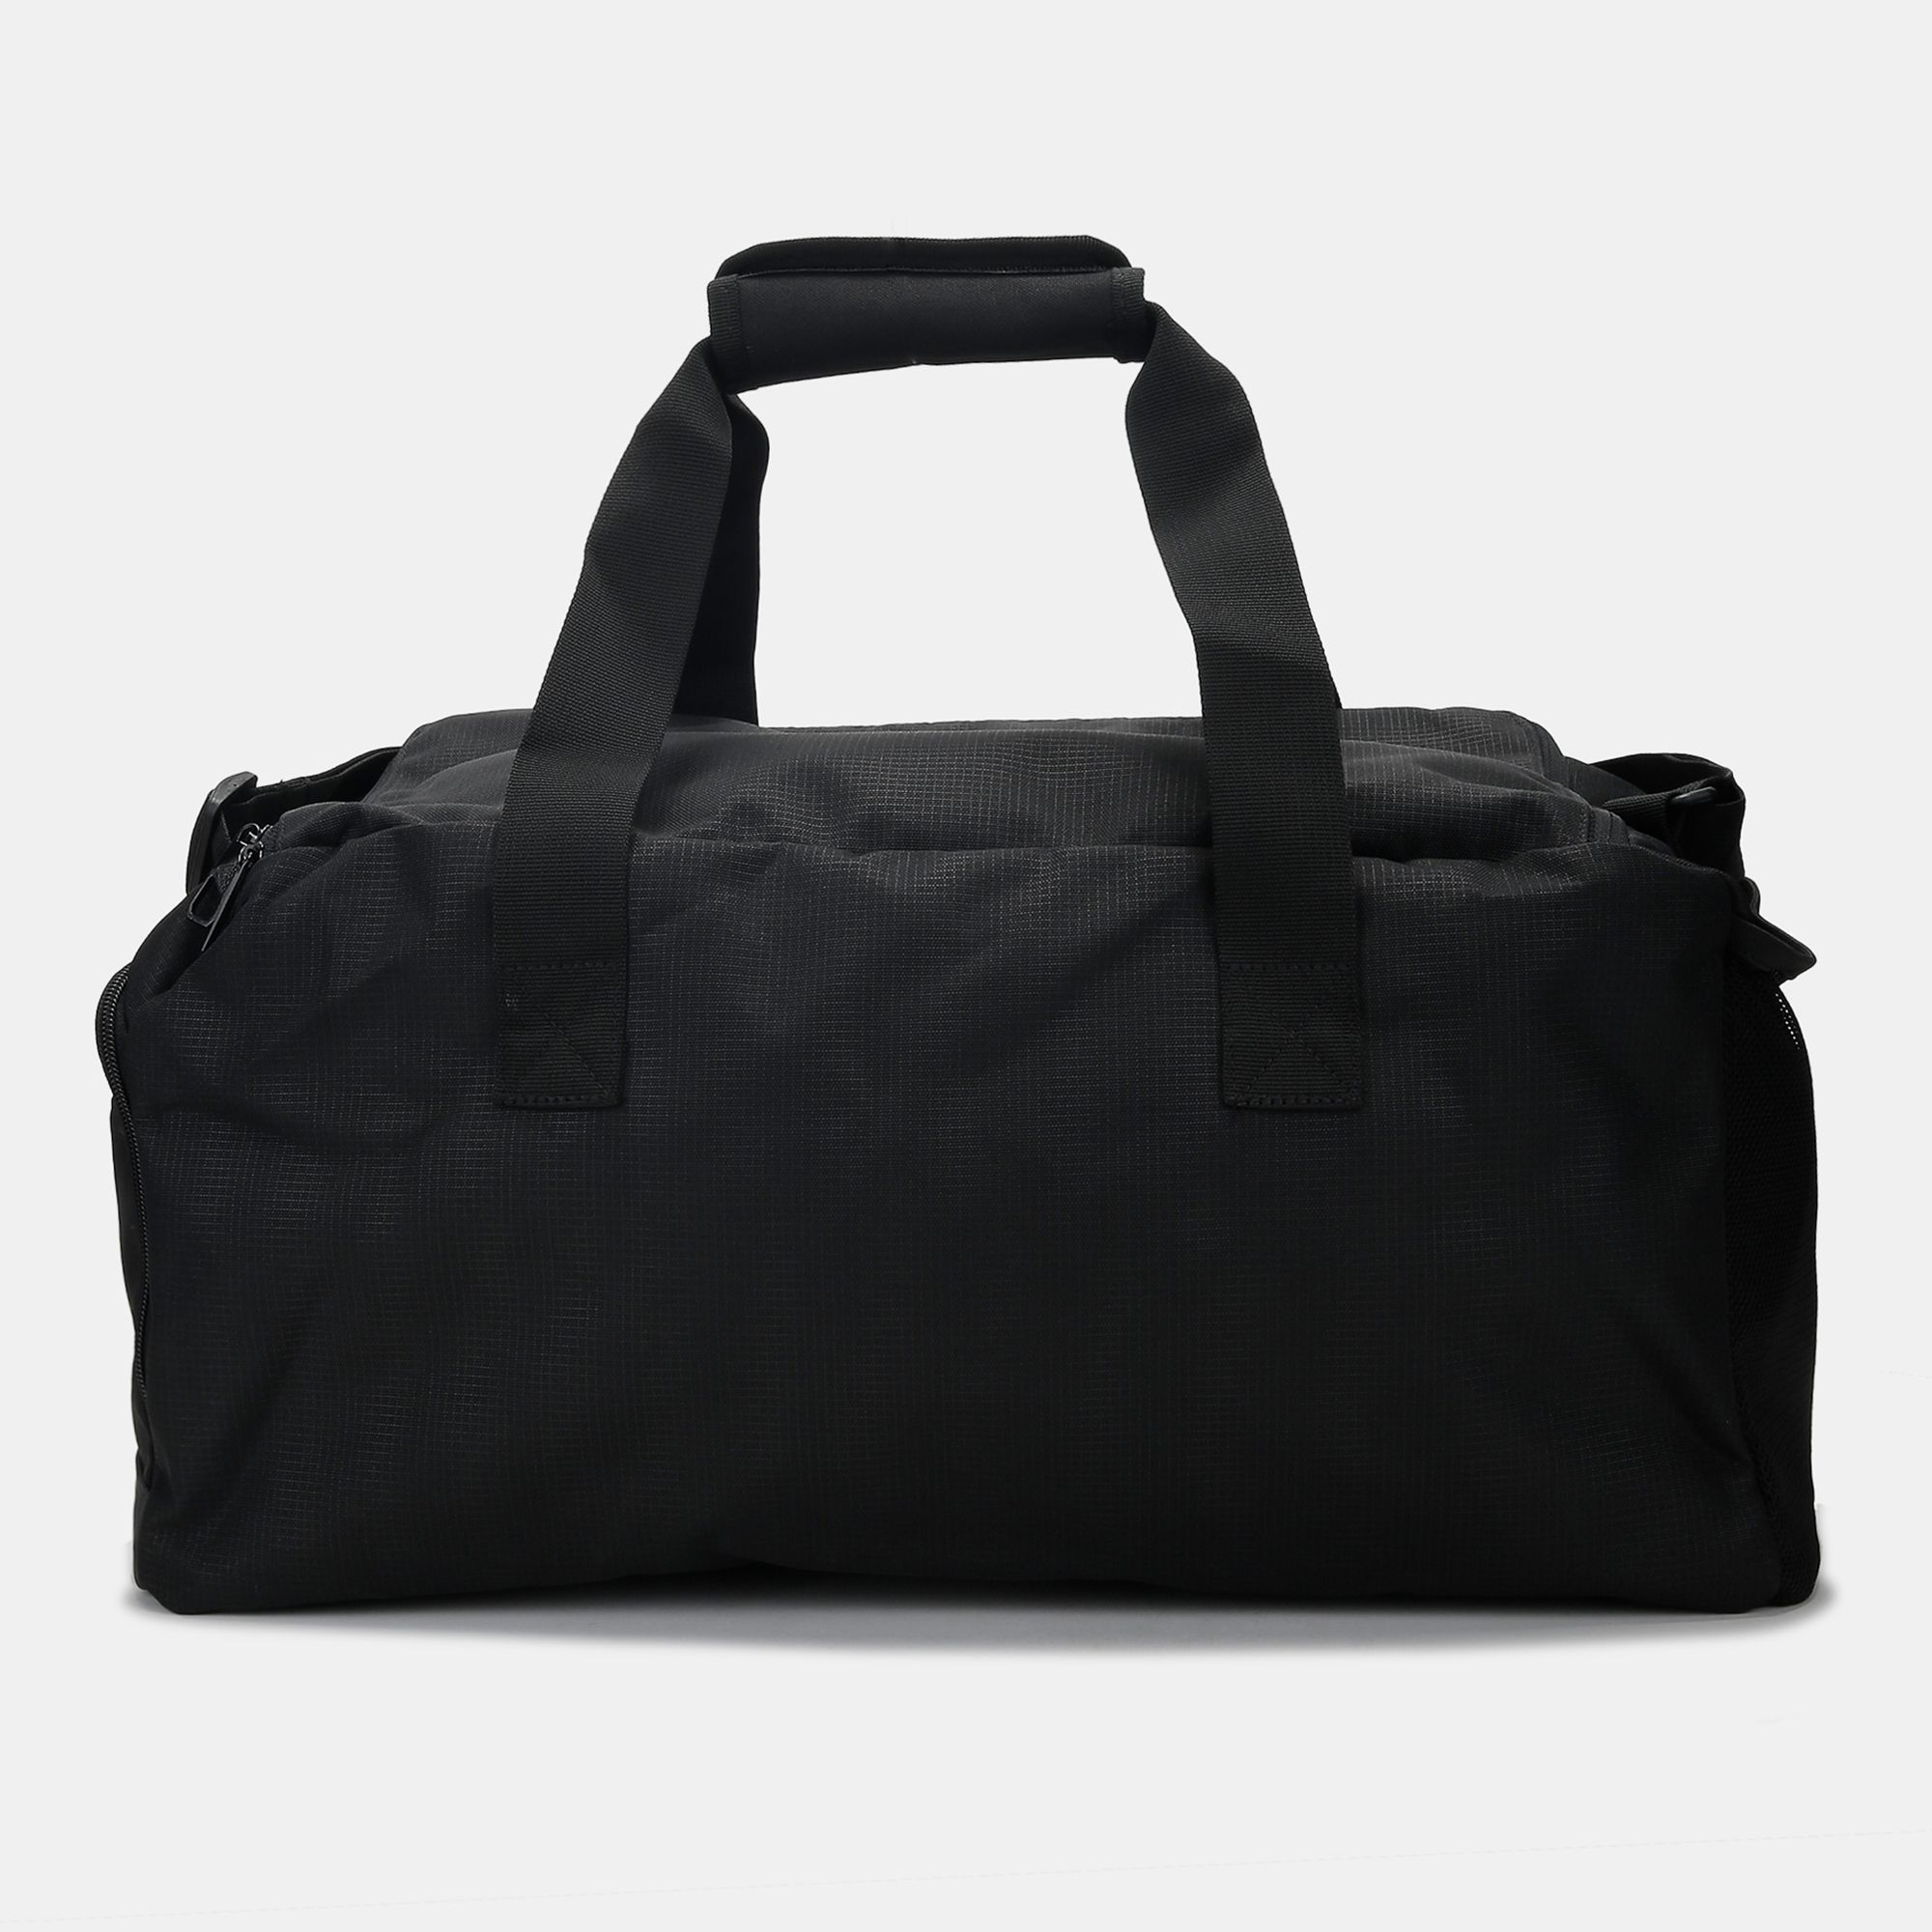 Shop Black adidas 3-Stripes Performance Team Bag Small for Unisex by ... 03dceb87fde39